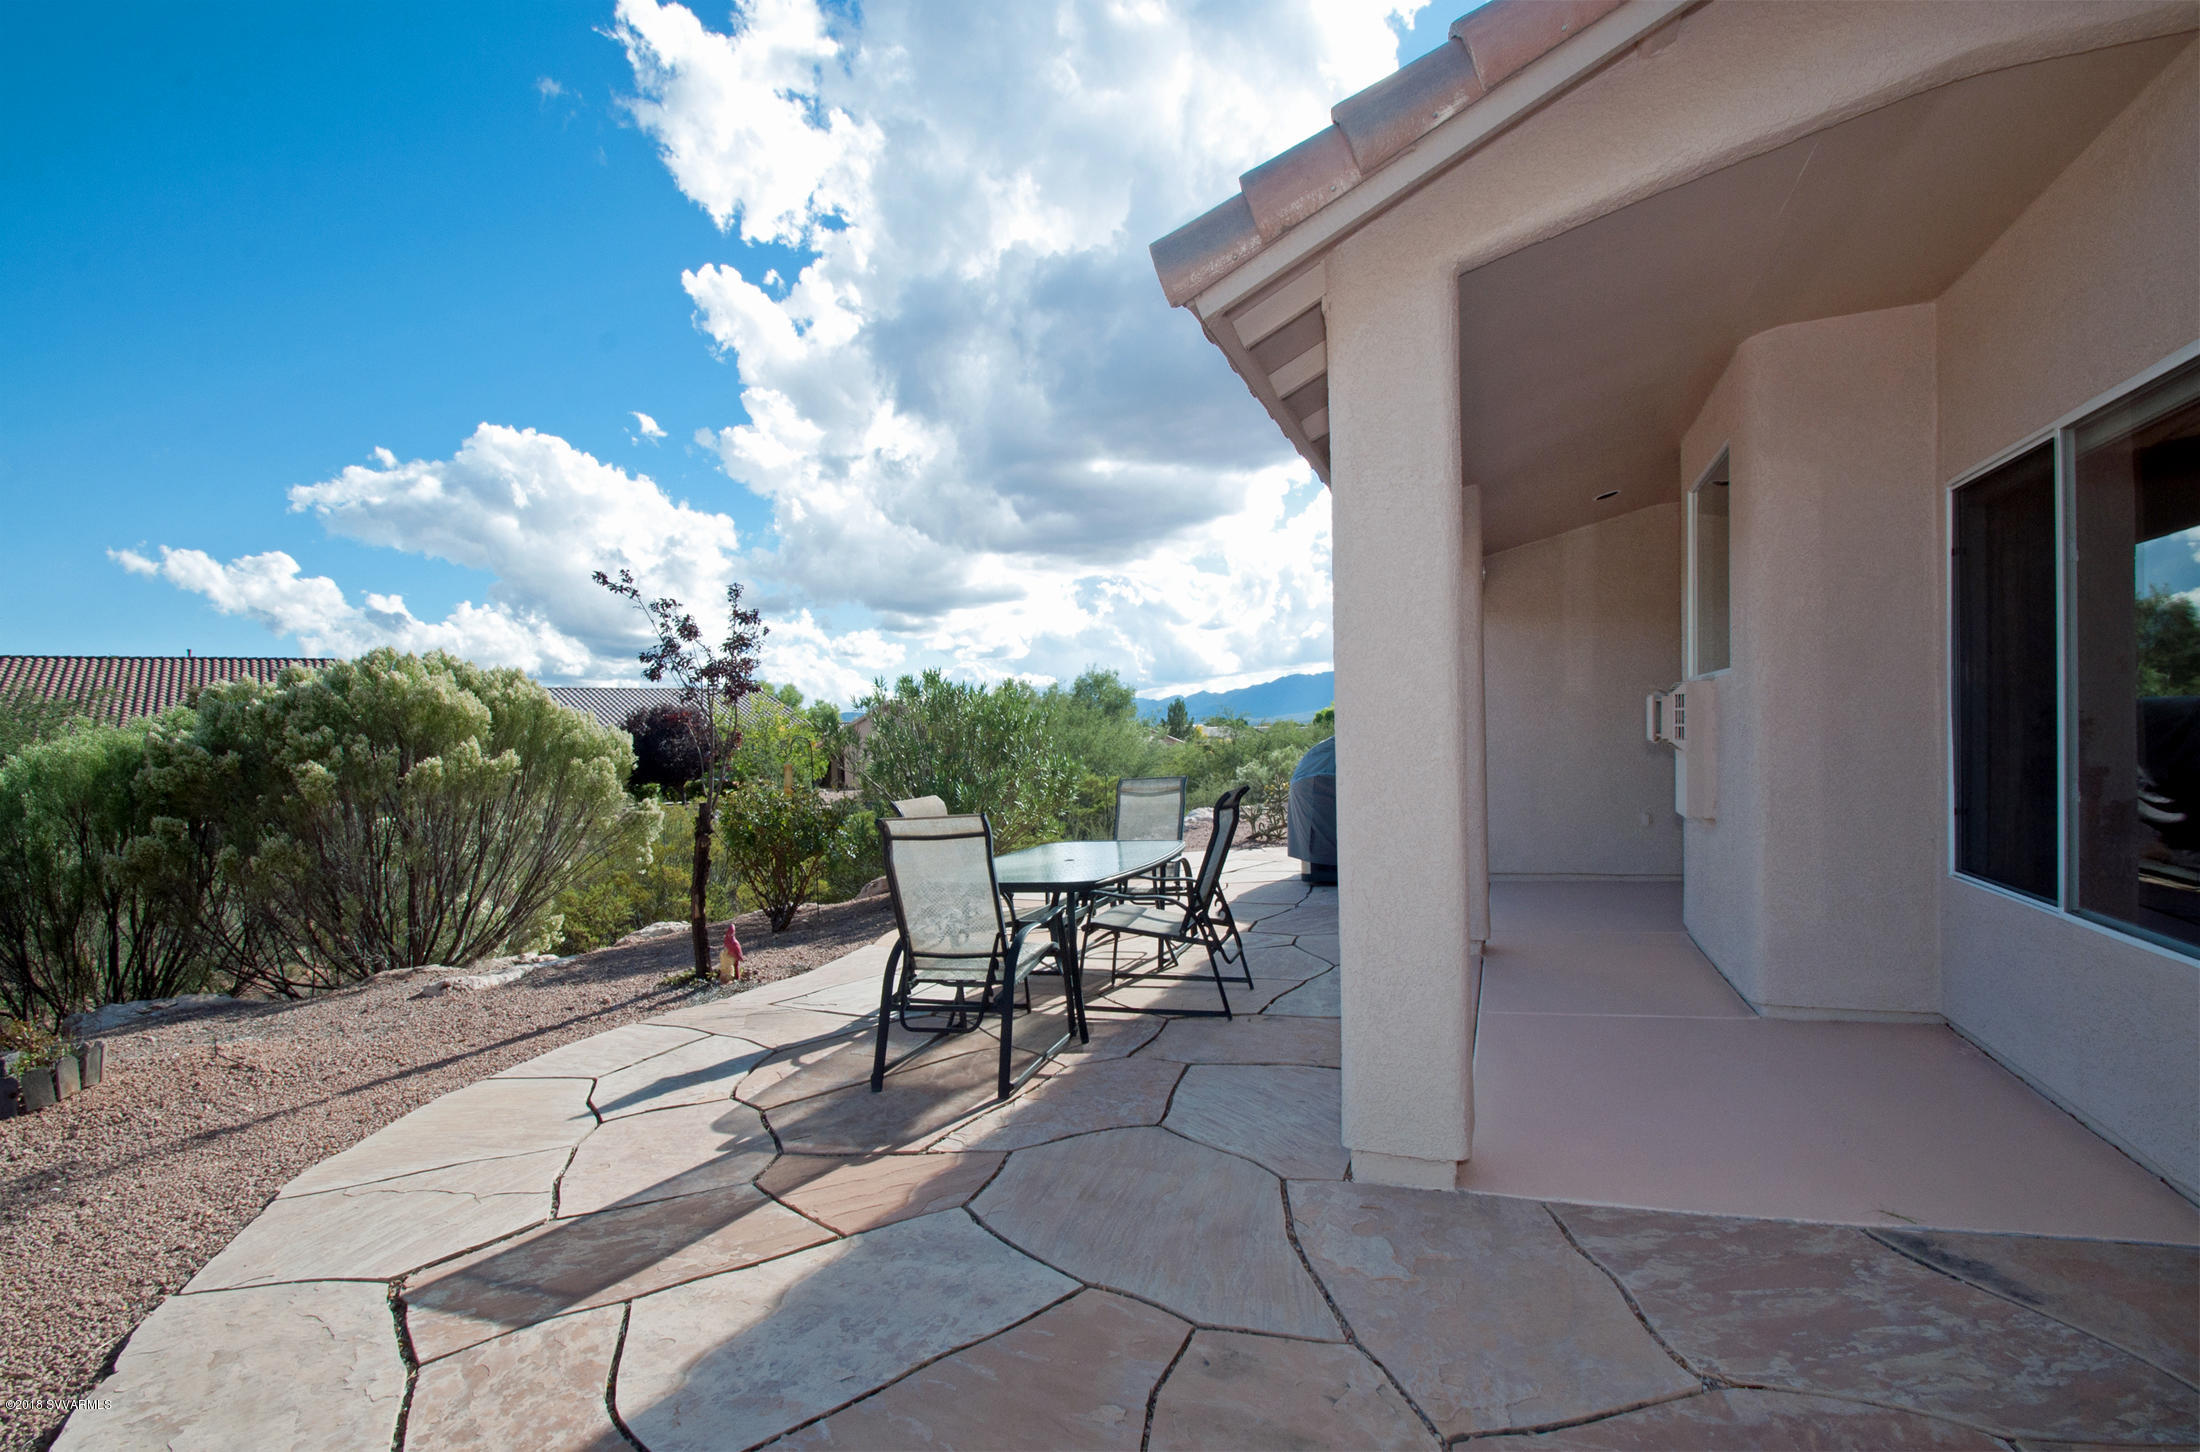 735 S Rising View Court #130 Cornville, AZ 86325